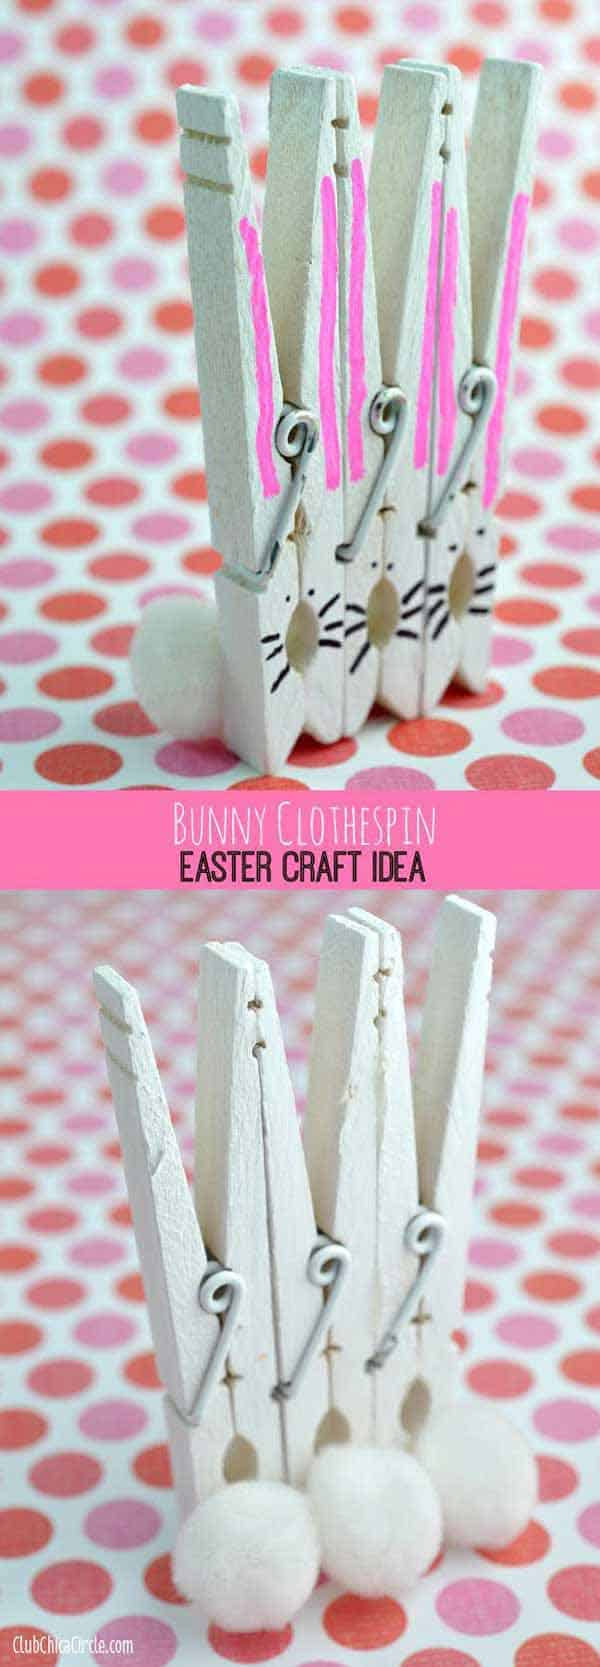 Cute Wood Craft Clothespin